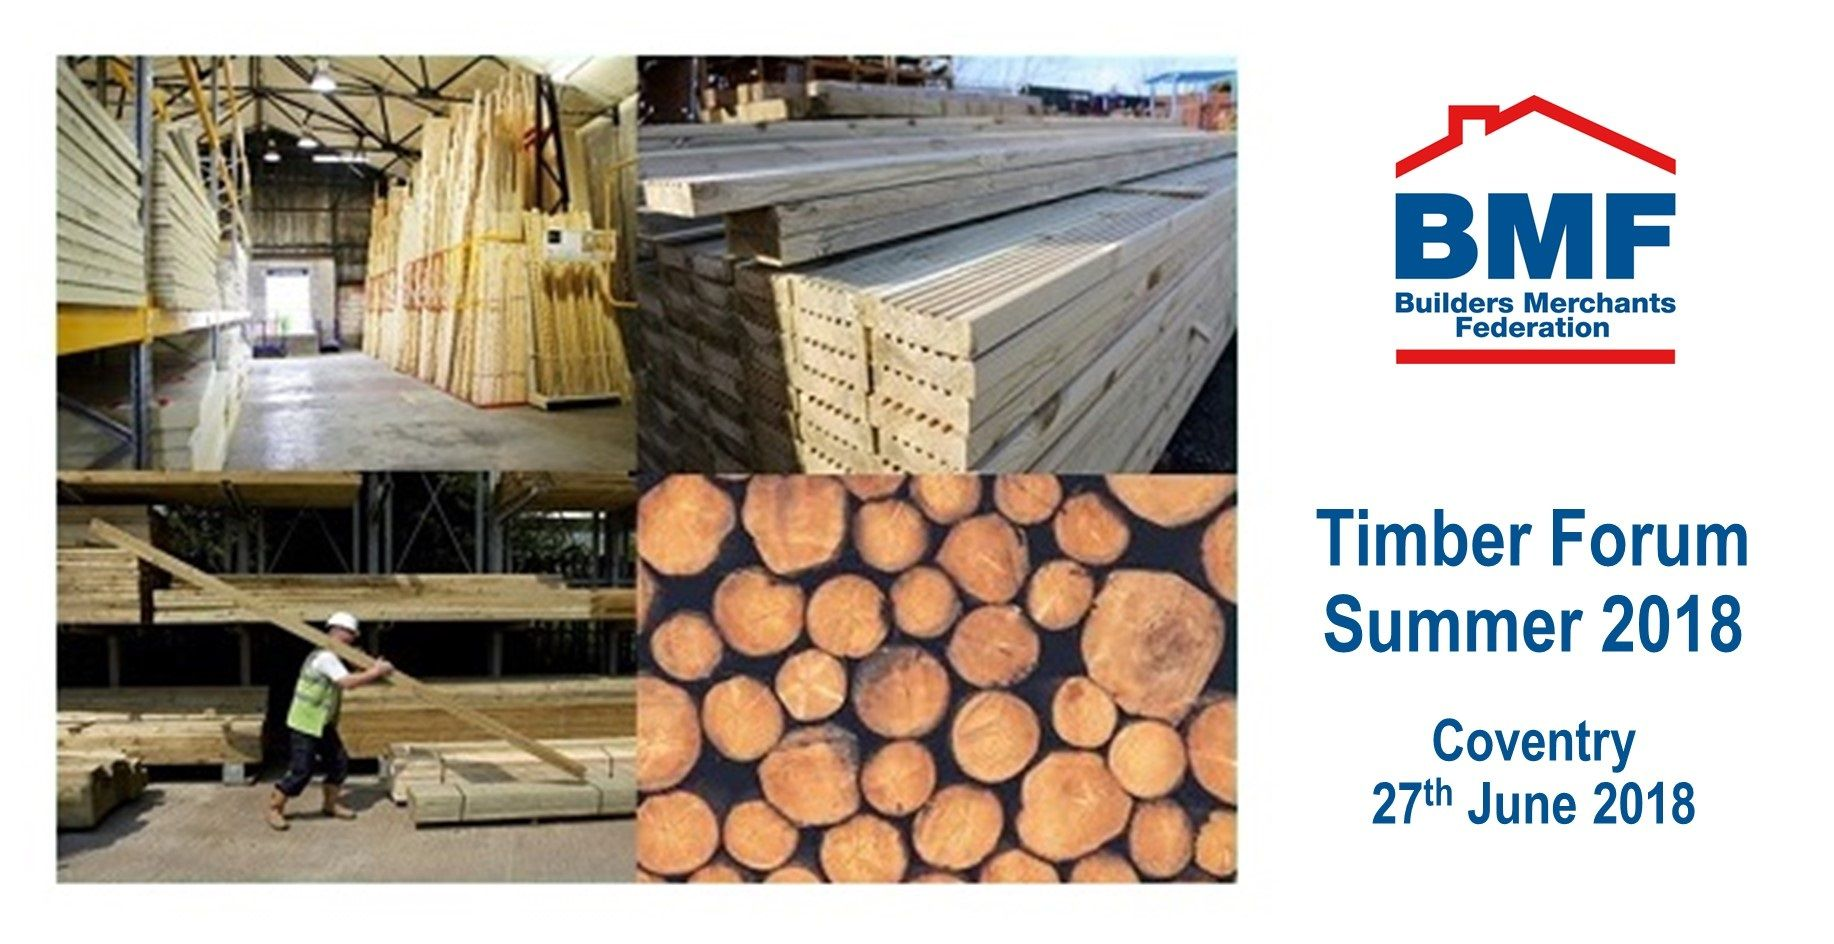 Industry News - Timber Trade Federation